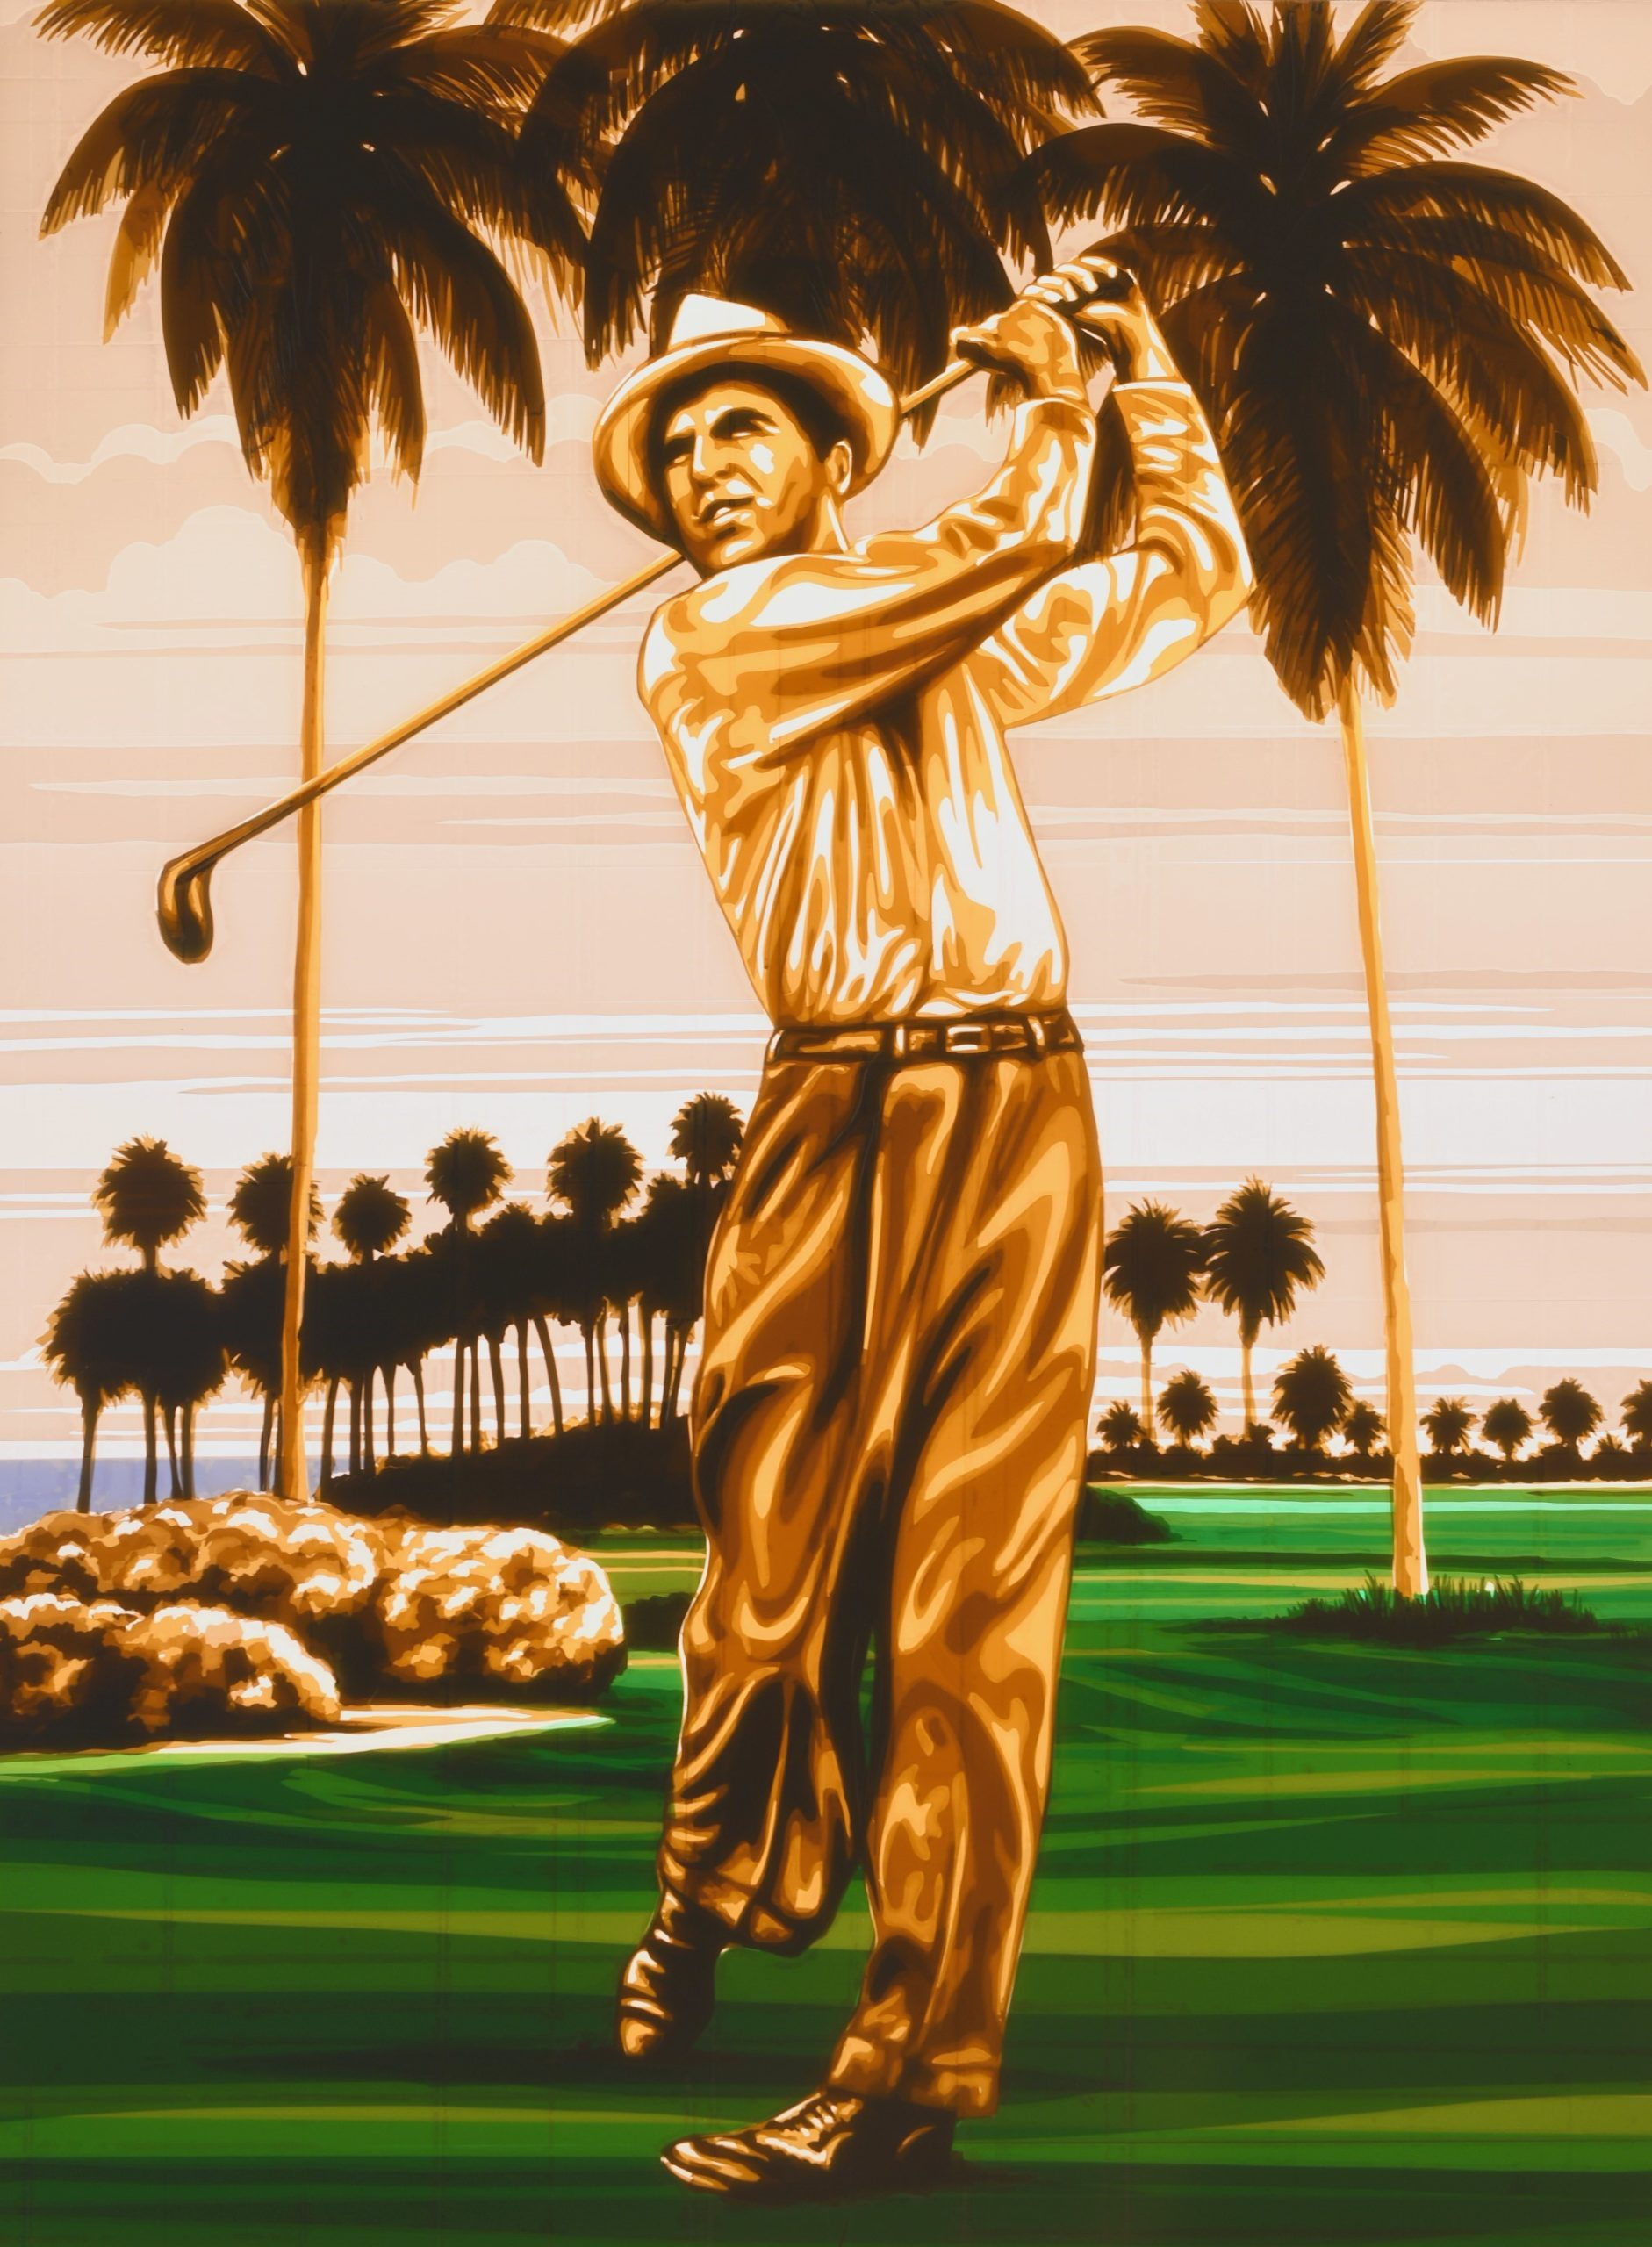 Tape Art by street artist Max Zorn, showing a golfer and palm trees